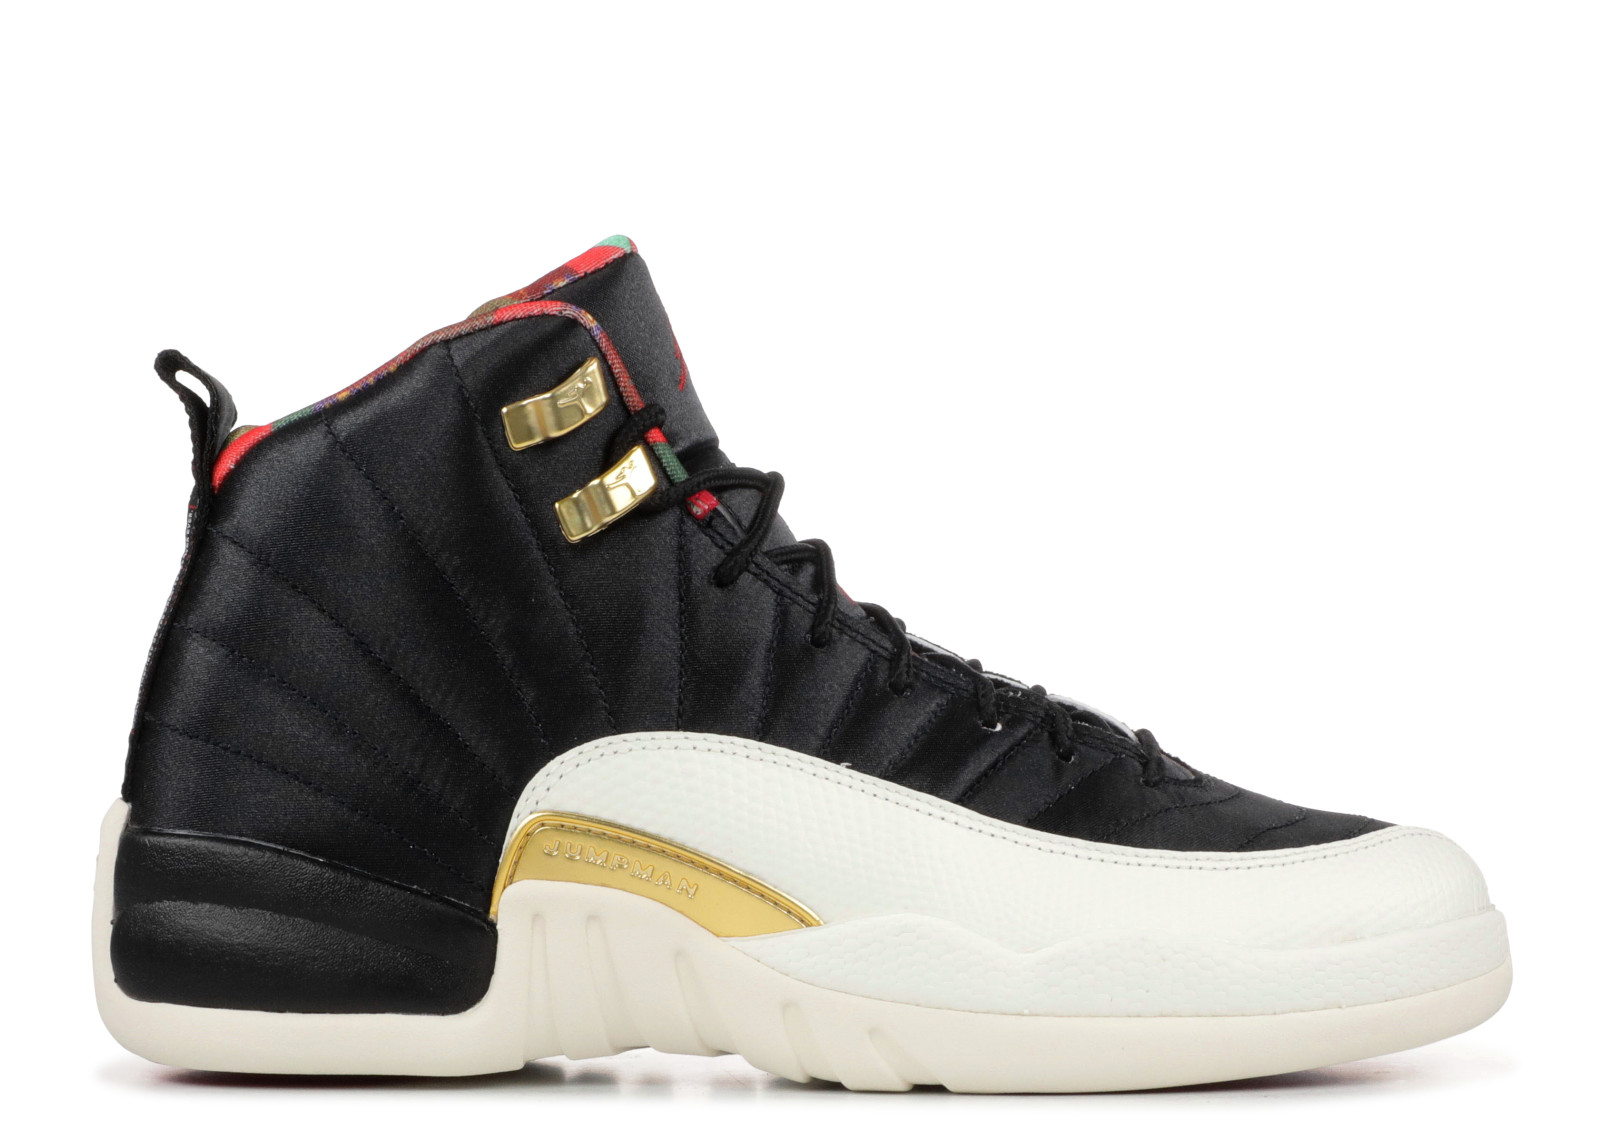 online store 490ac 1d550 Jordan 12 Retro Chinese New Year 2019 (GS)